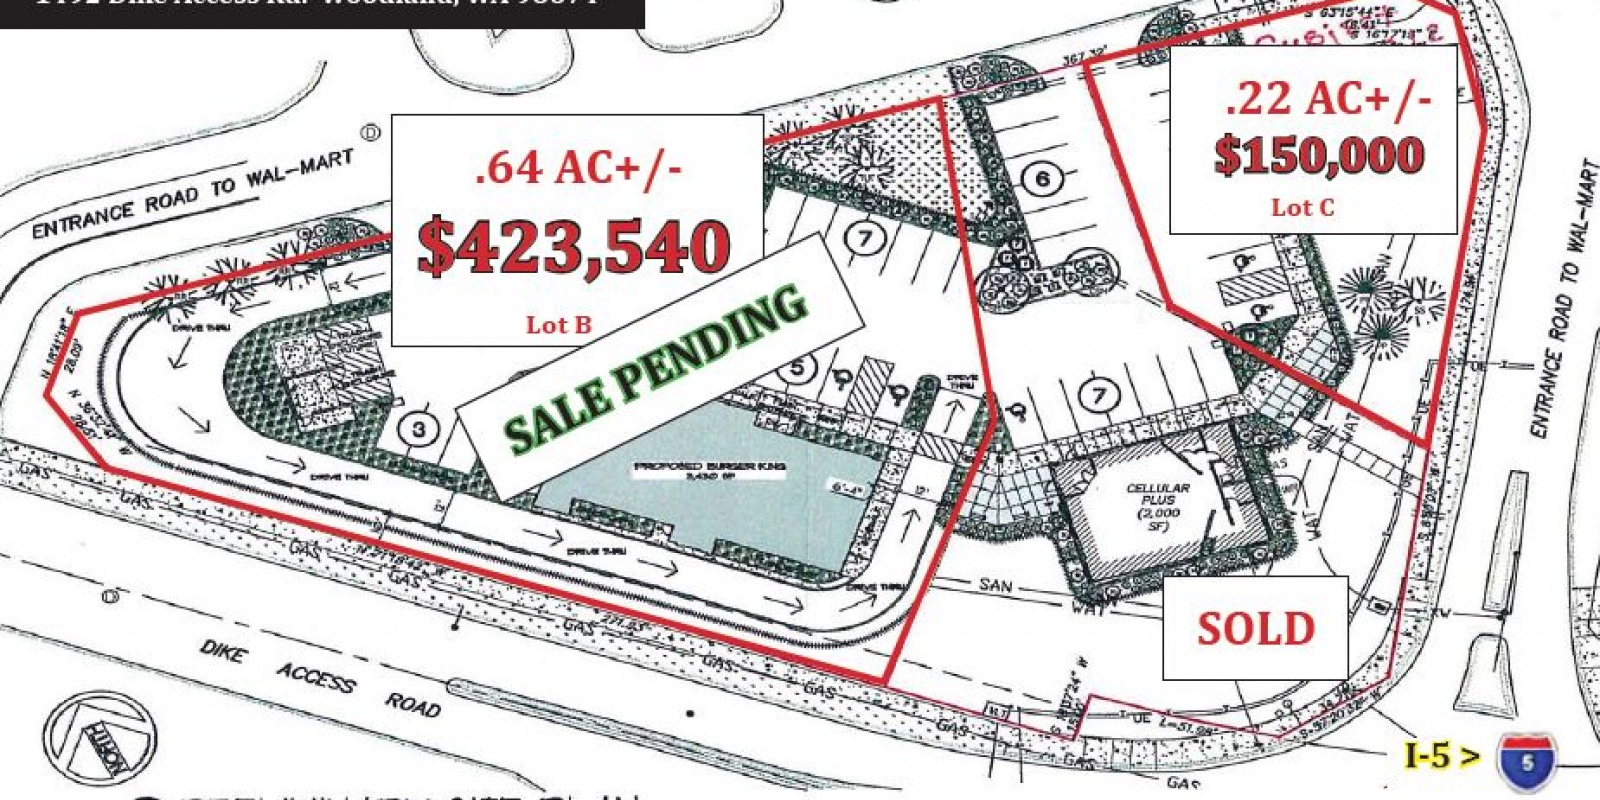 Prelim. .22 AC Lot C Woodland